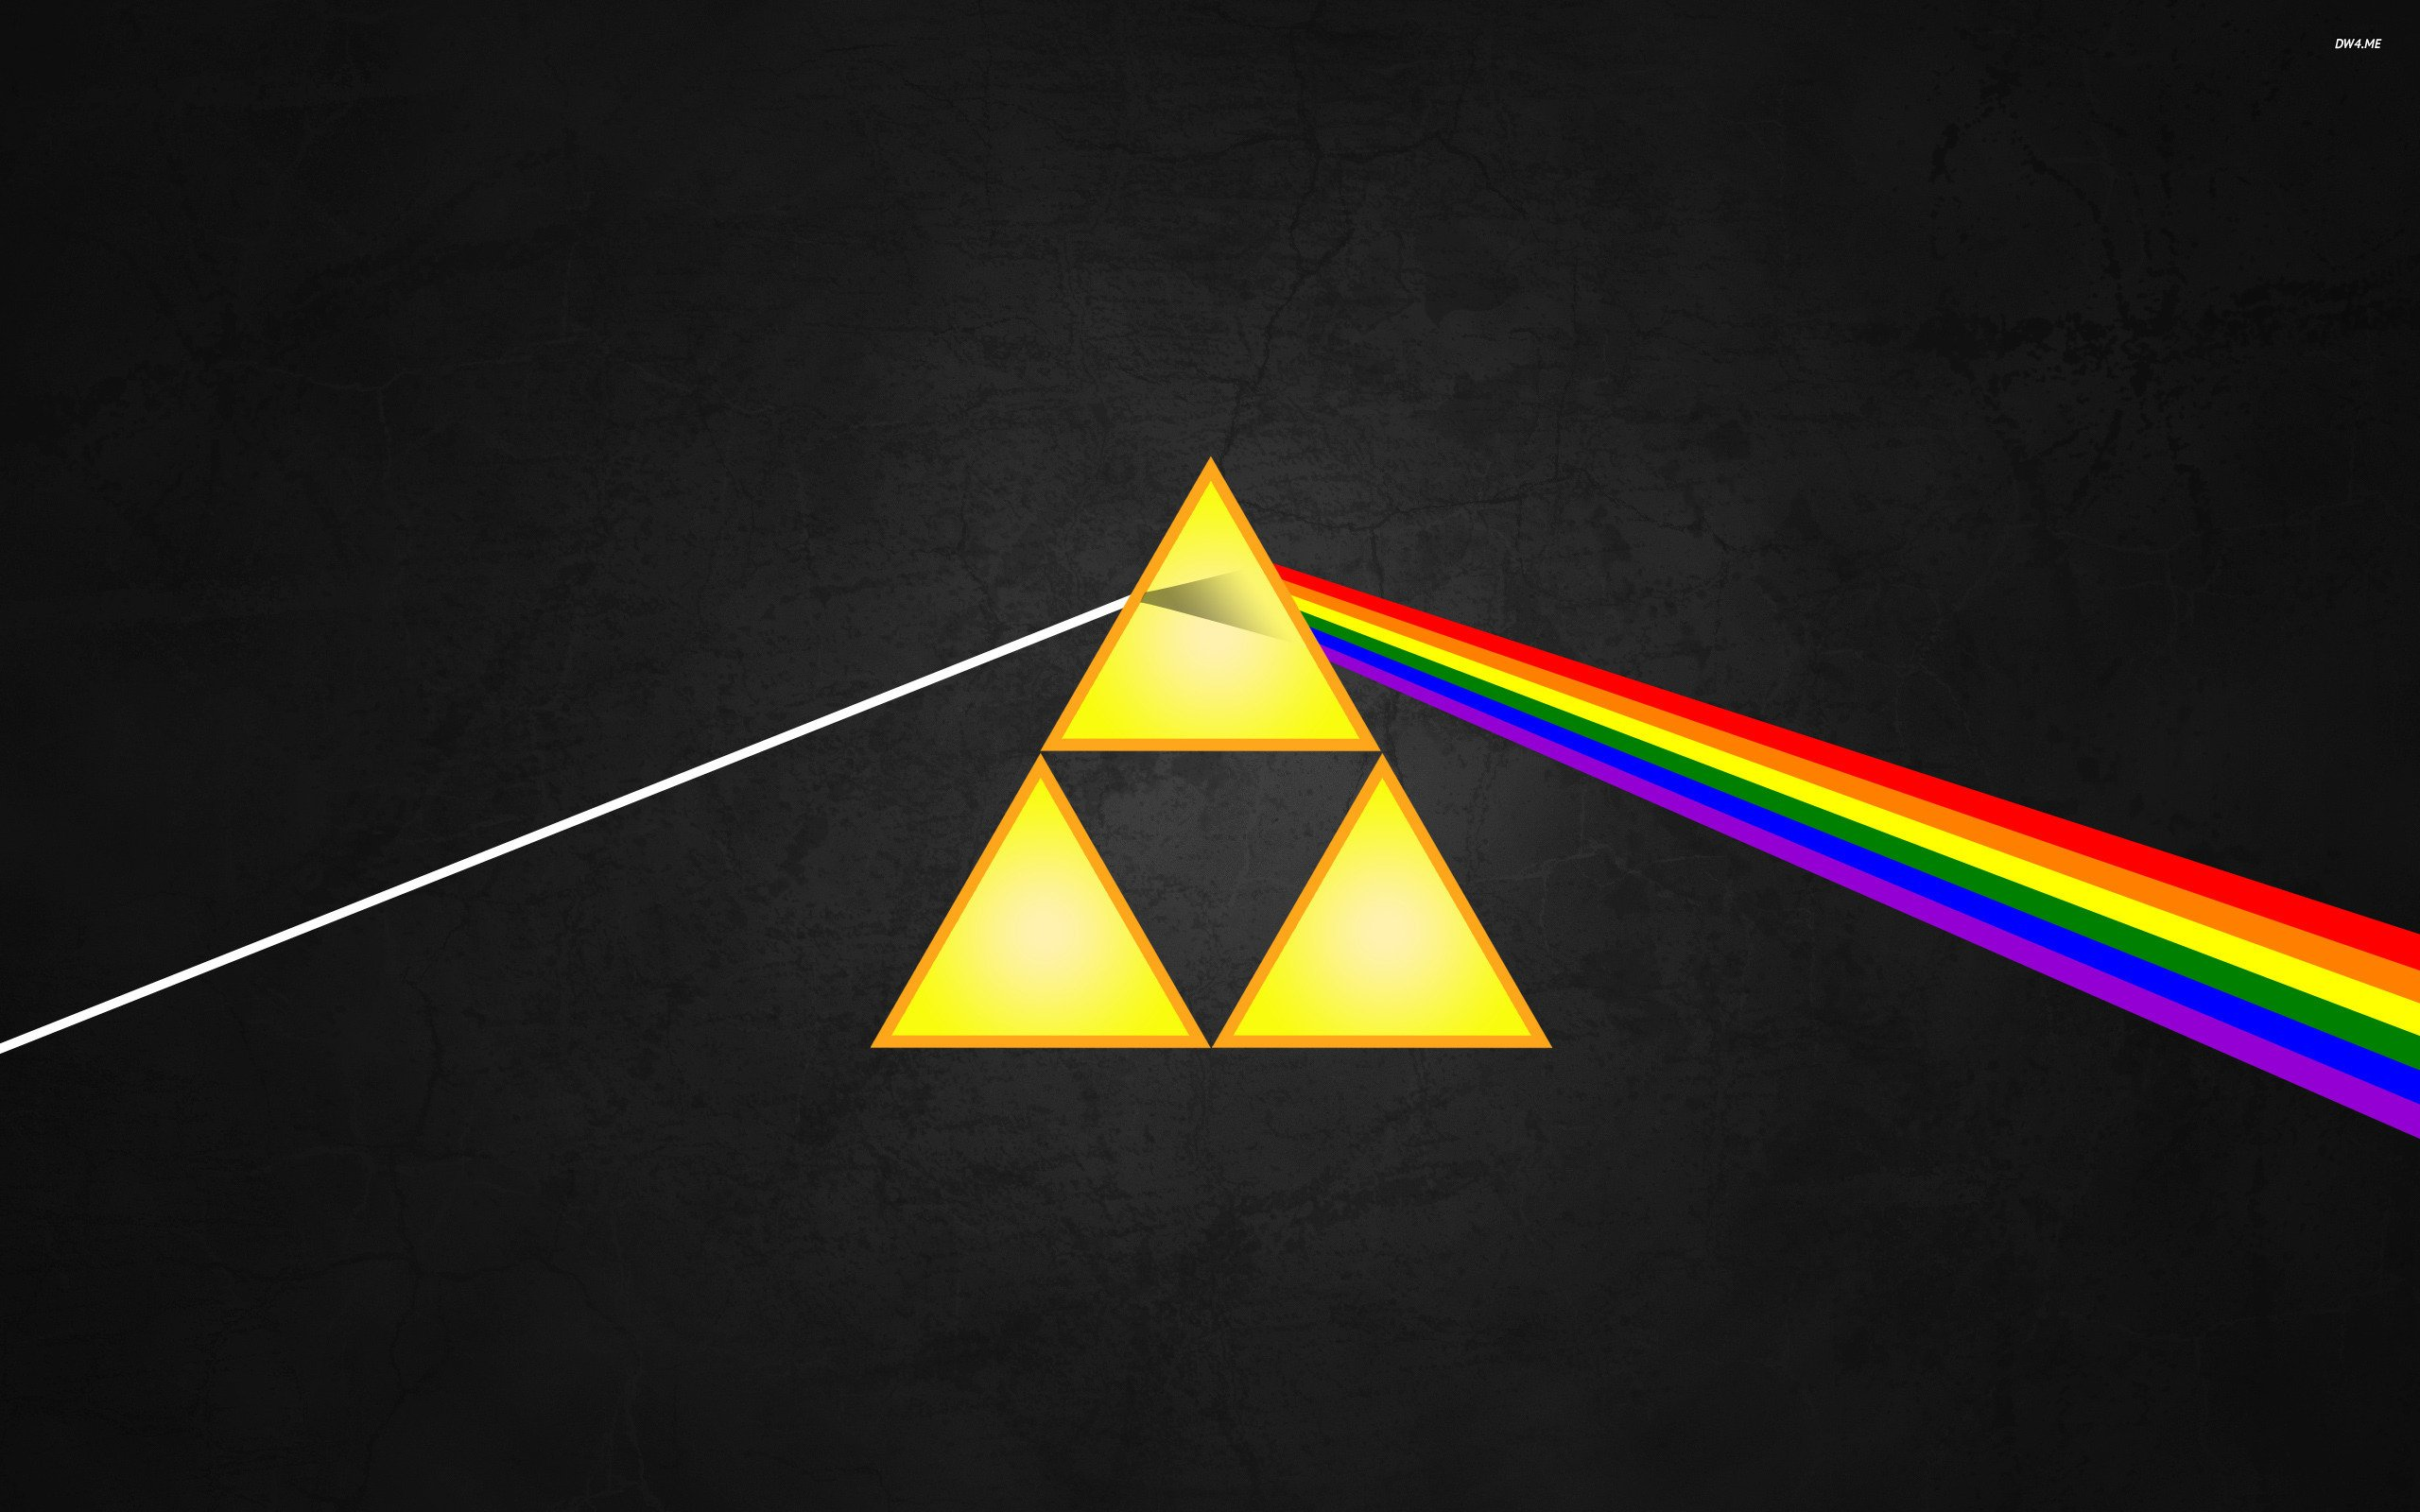 Hd Diwali Wallpapers Free Download Pink Floyd Prism Wallpaper Gallery